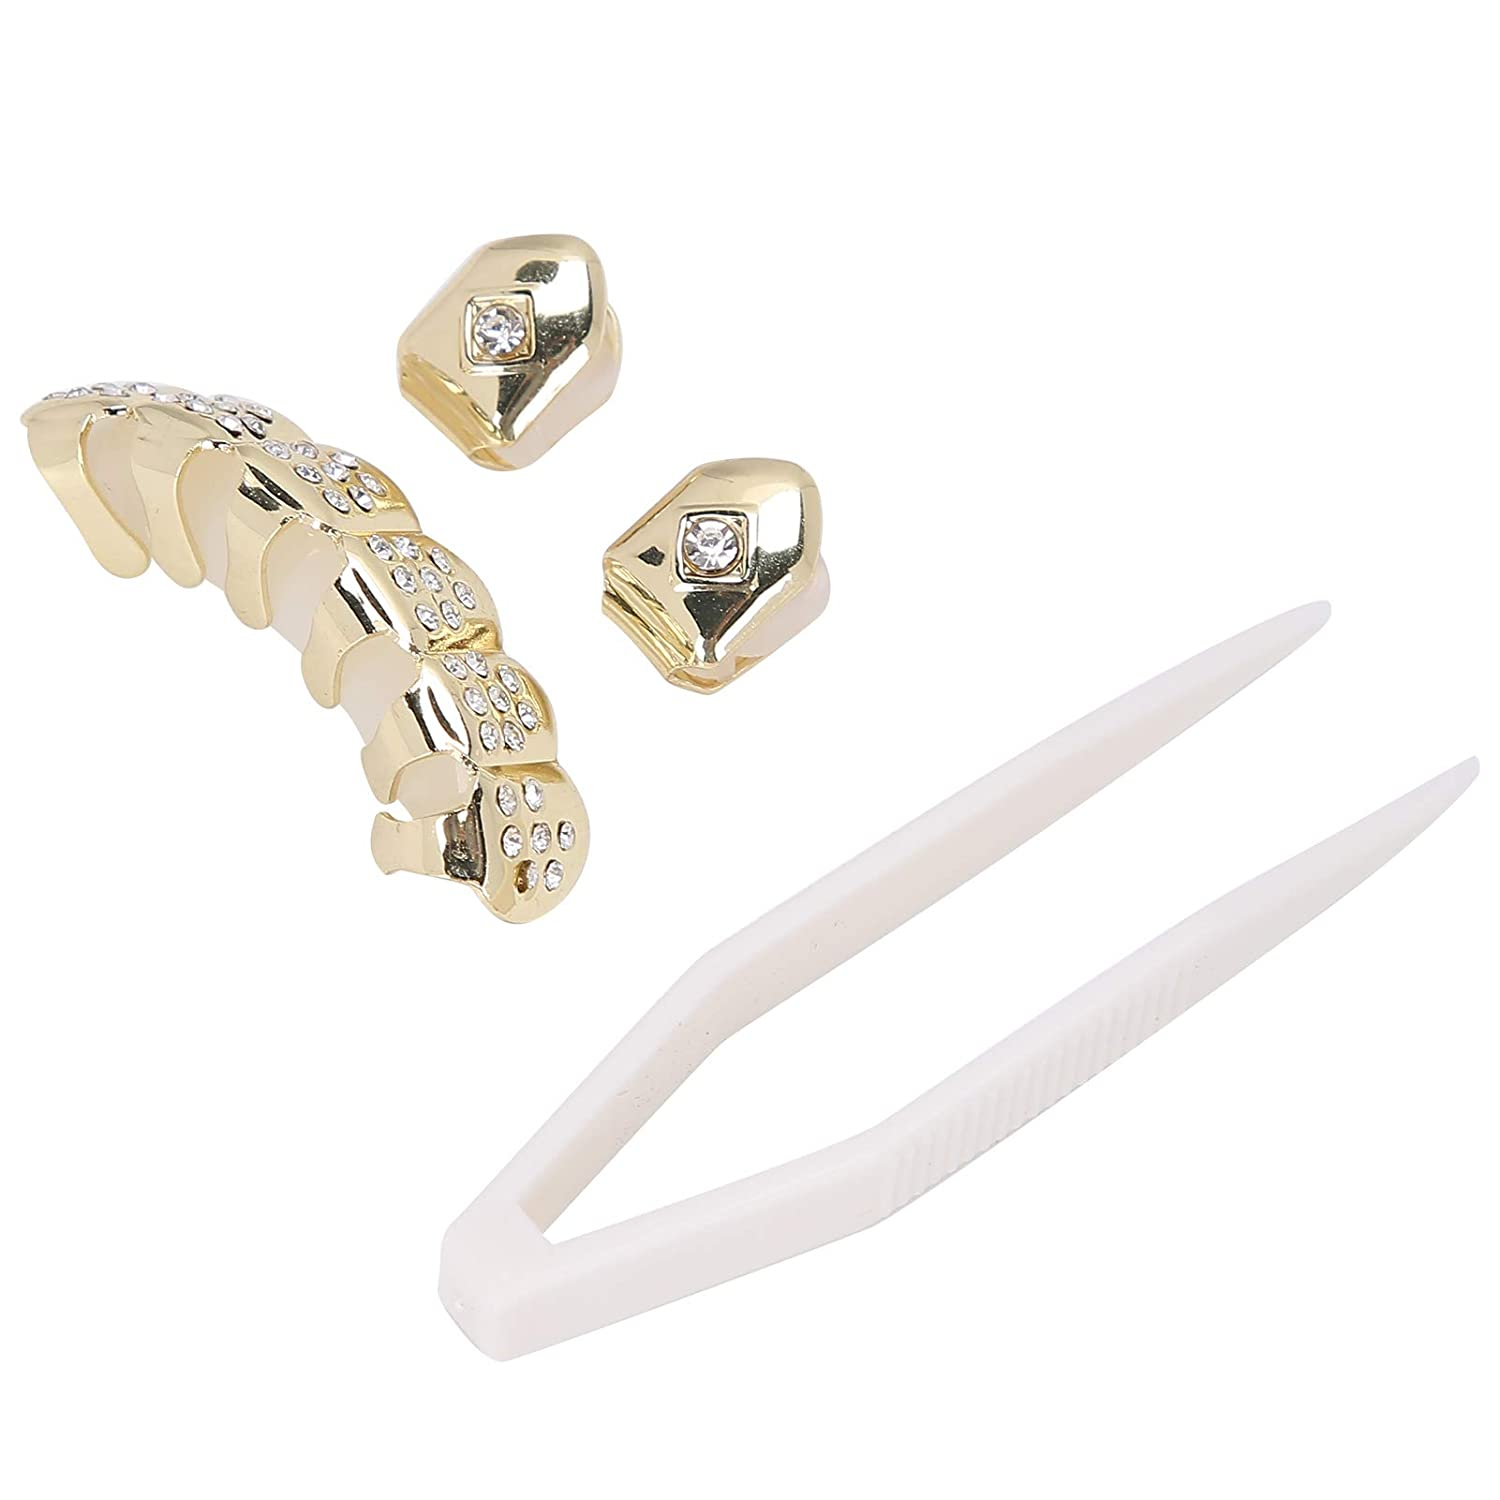 Hip Hop Style Tooth Plated-gold Metal Gold Teeth Body Jewelry for Women for Cosplay for Halloween for Party for Splint(Golden)